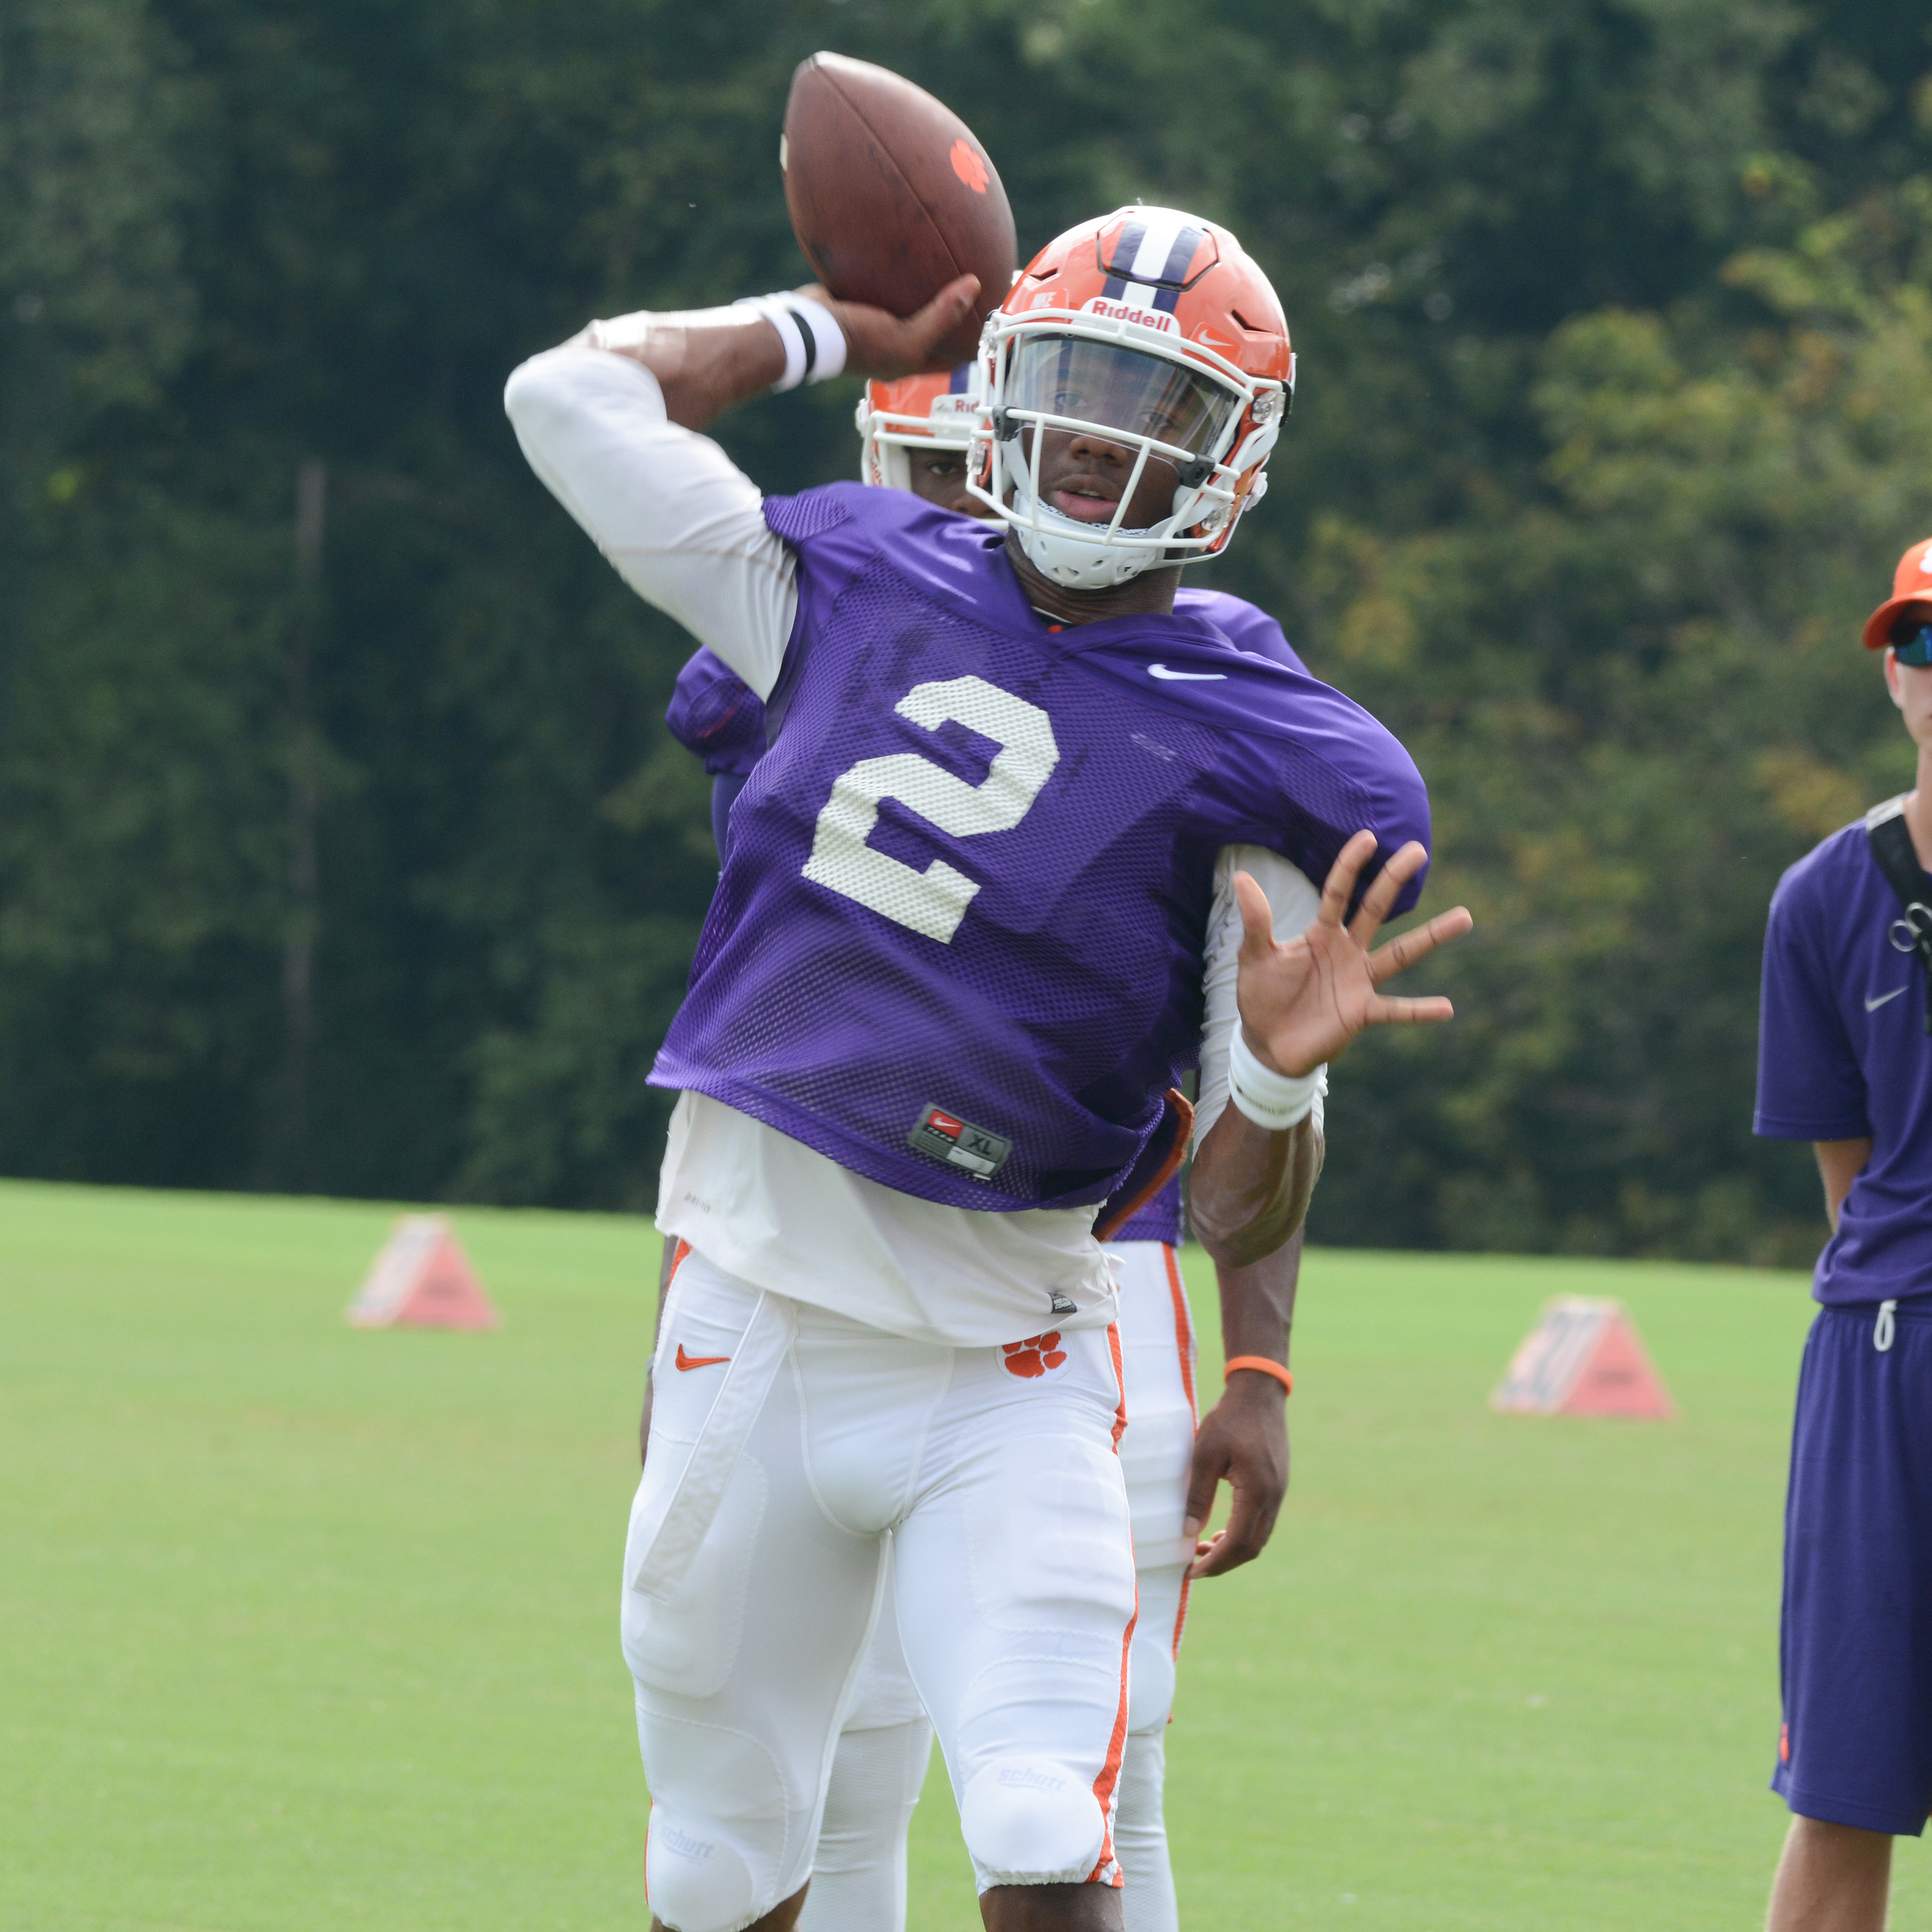 Clemson Holds Final Stadium Scrimmage